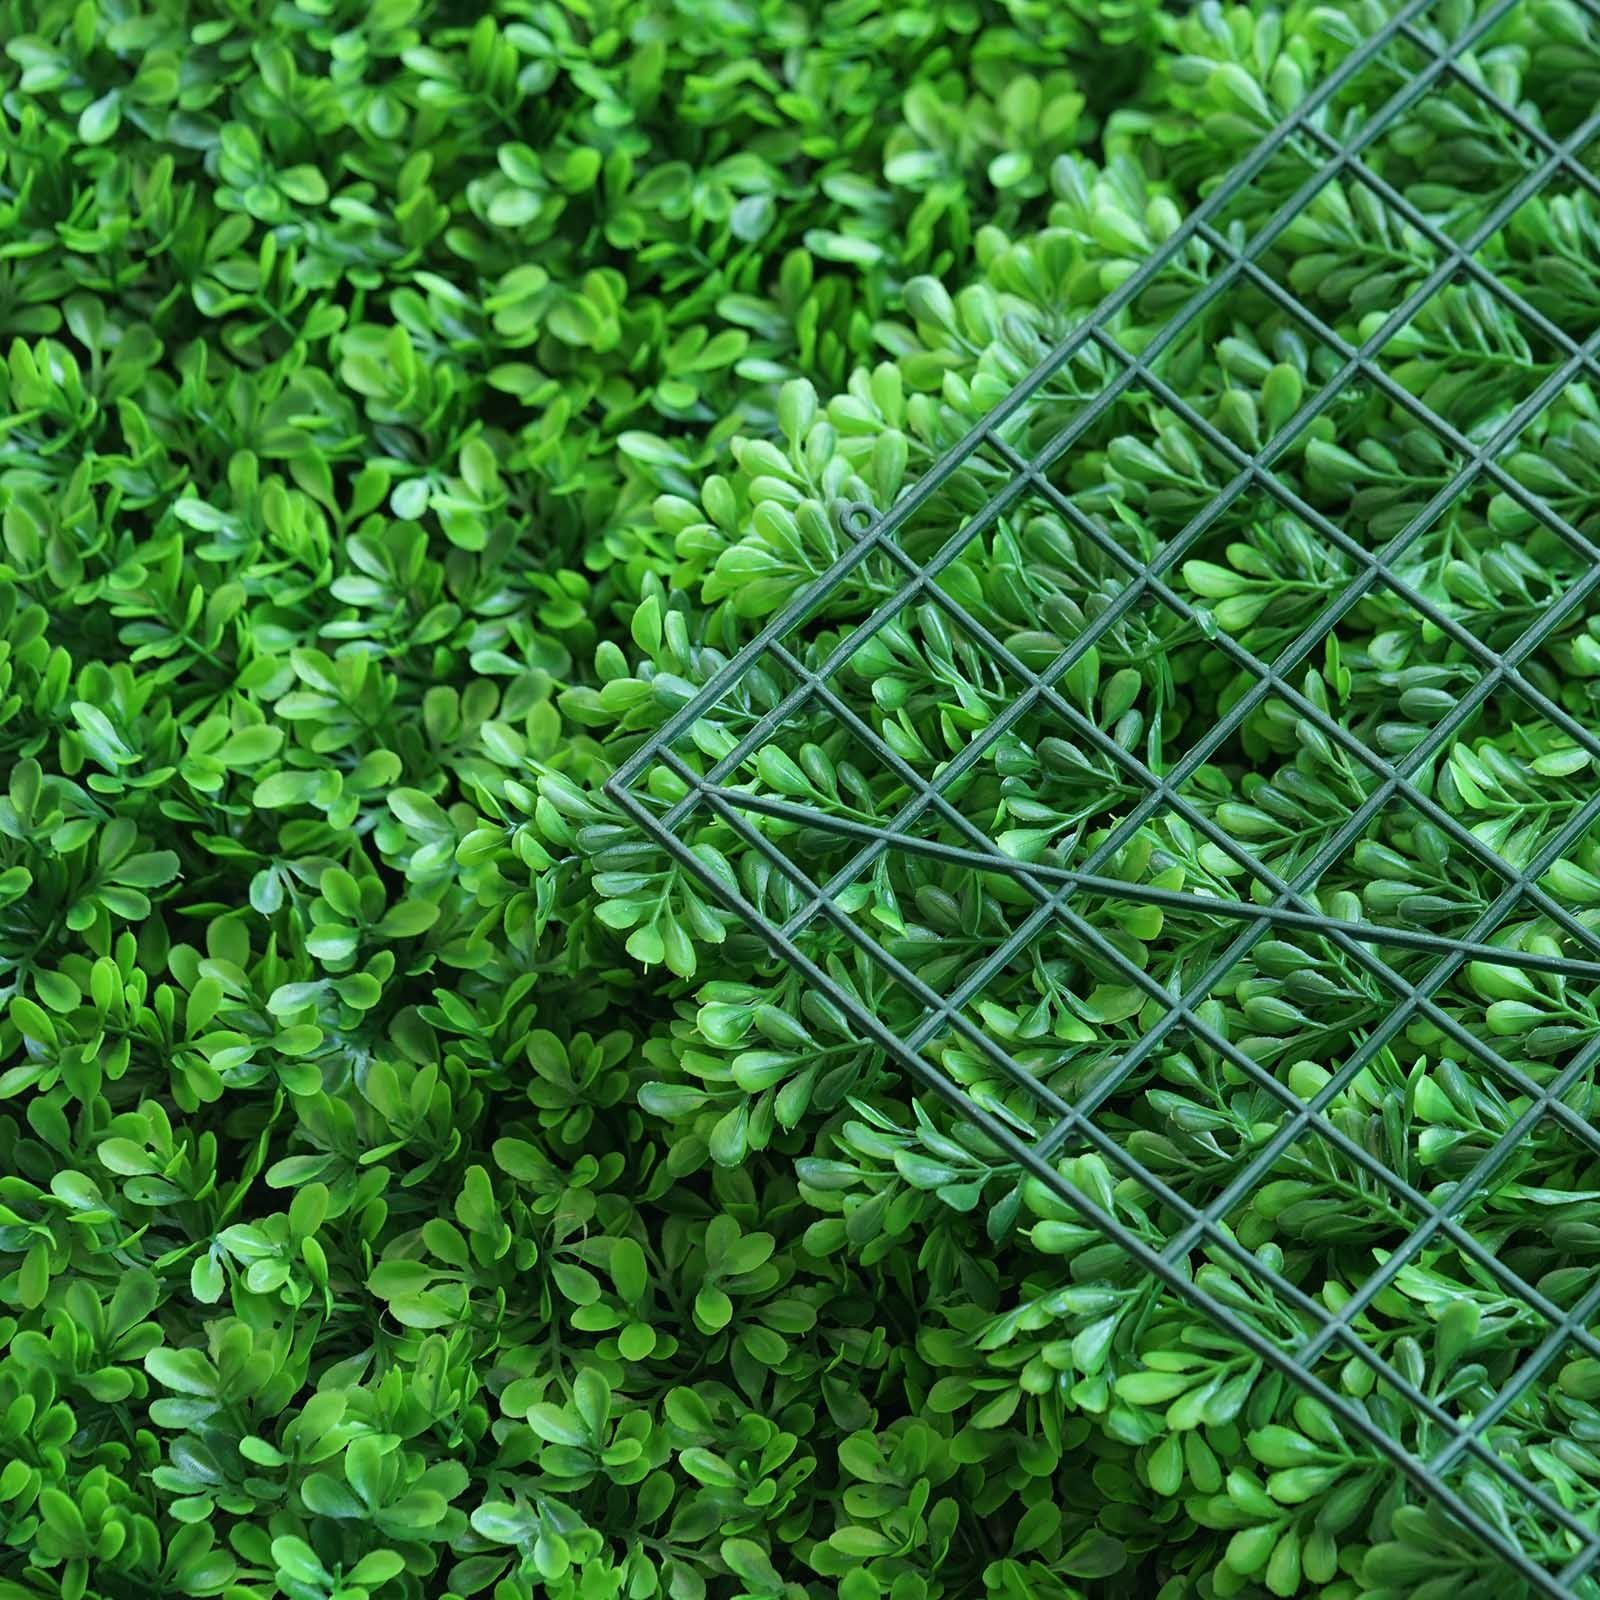 11 Sq ft. 4 Panels Artificial Lime Green Boxwood Hedge